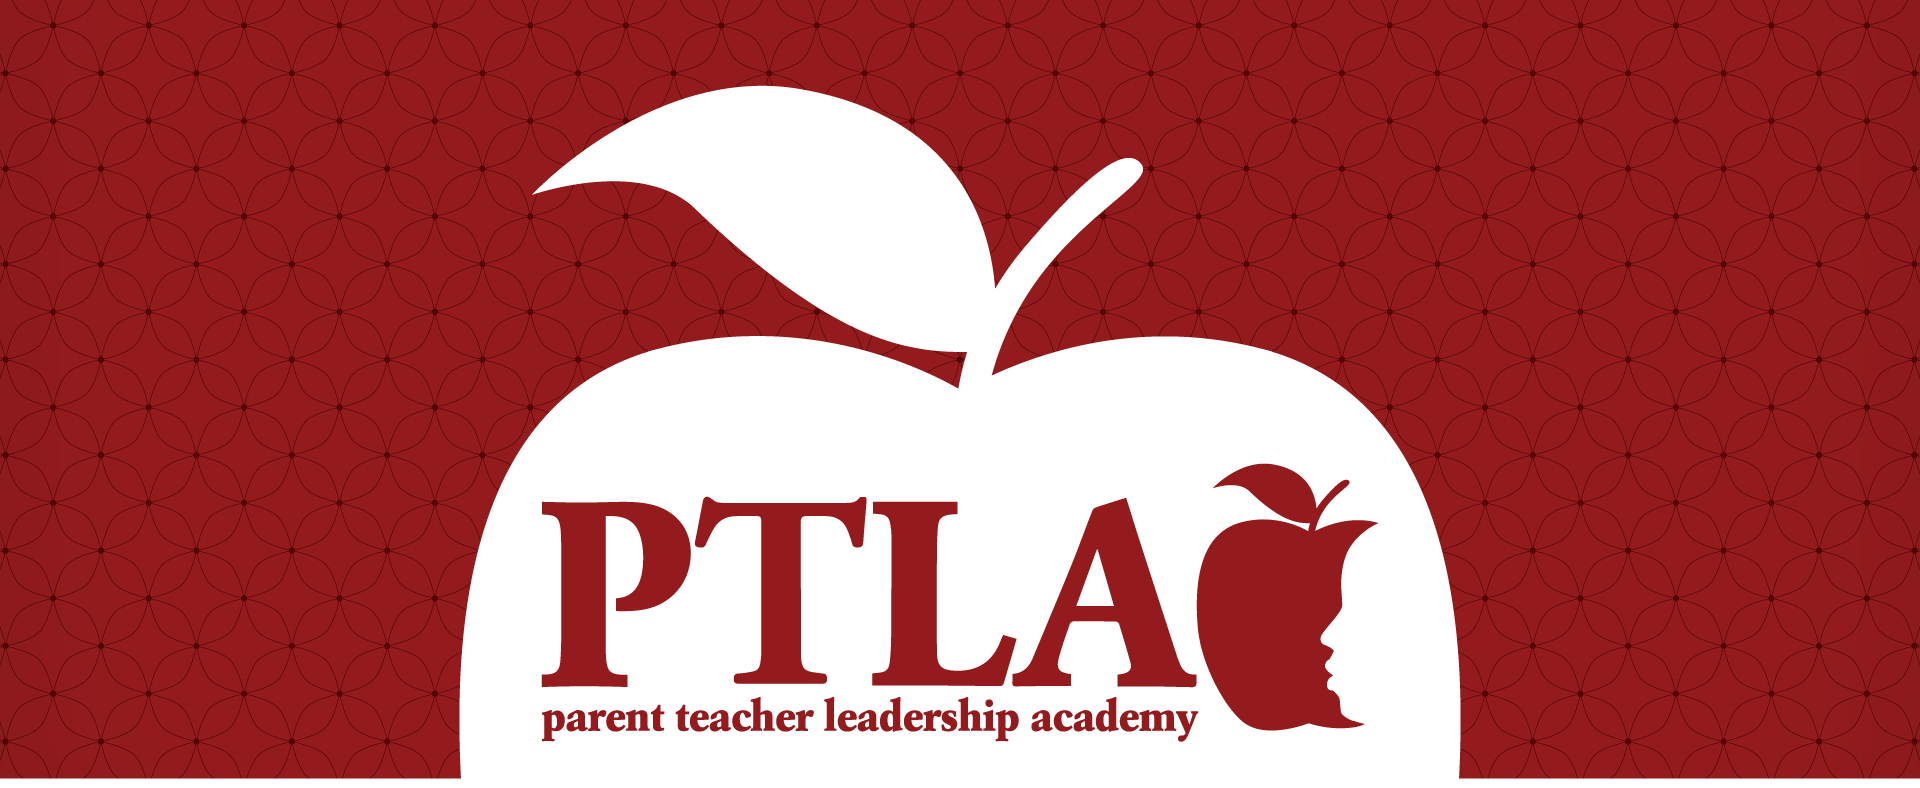 Parent Teacher Leadership Academy website header image.